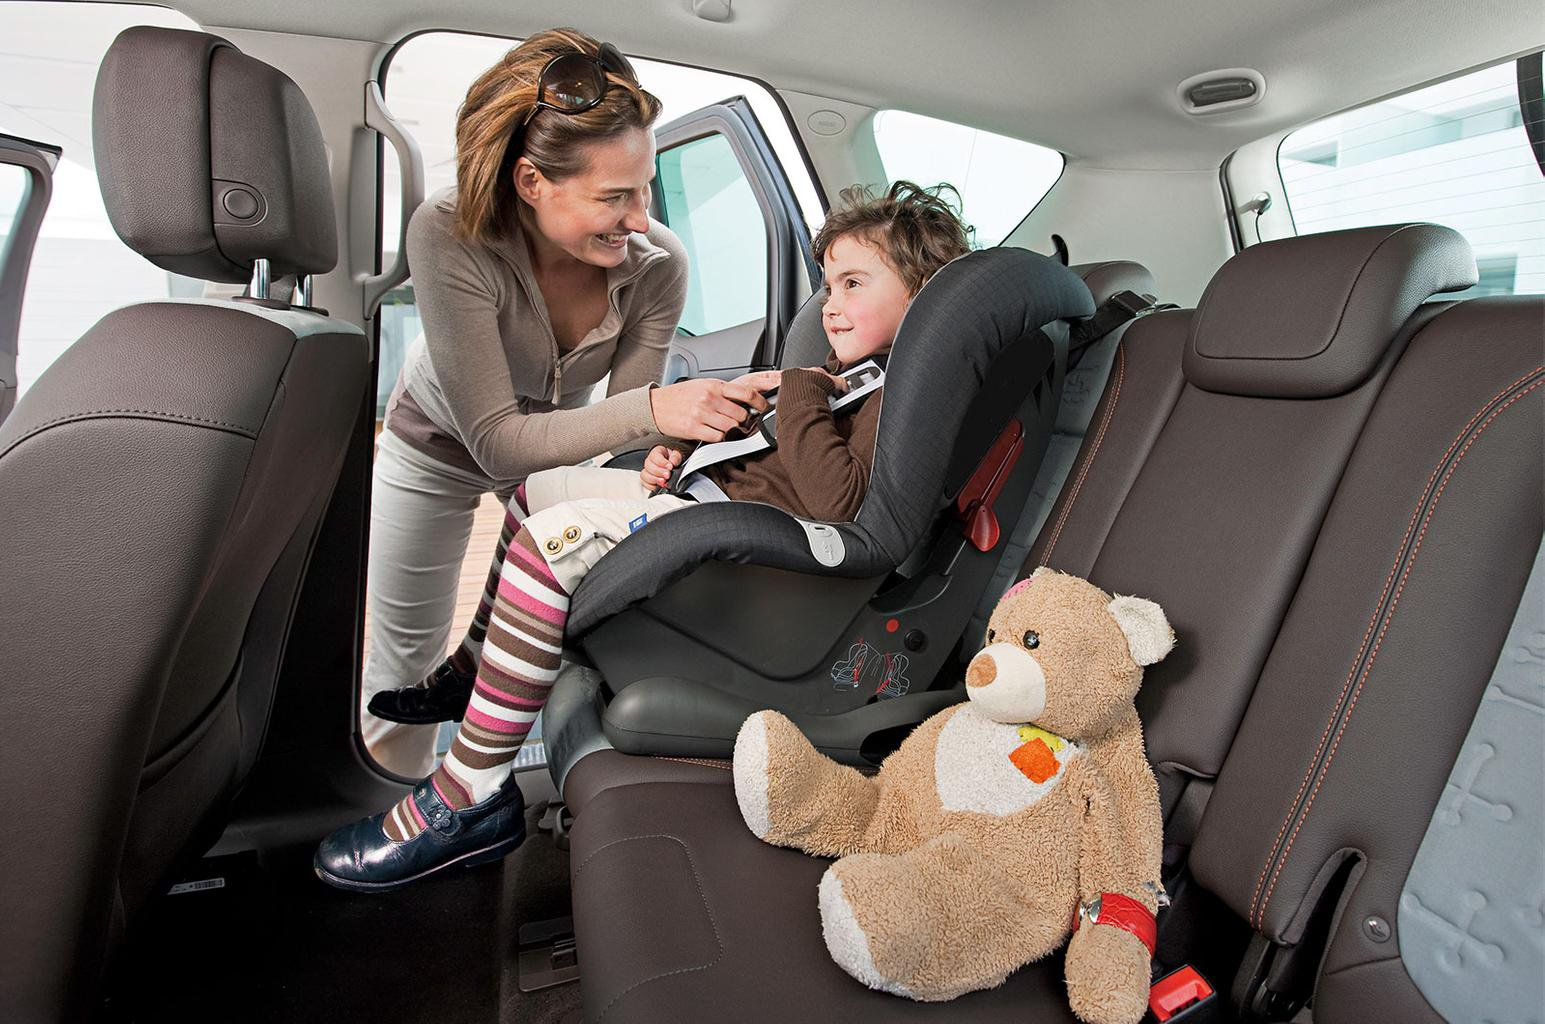 Child car seats: should I buy an i-Size seat?